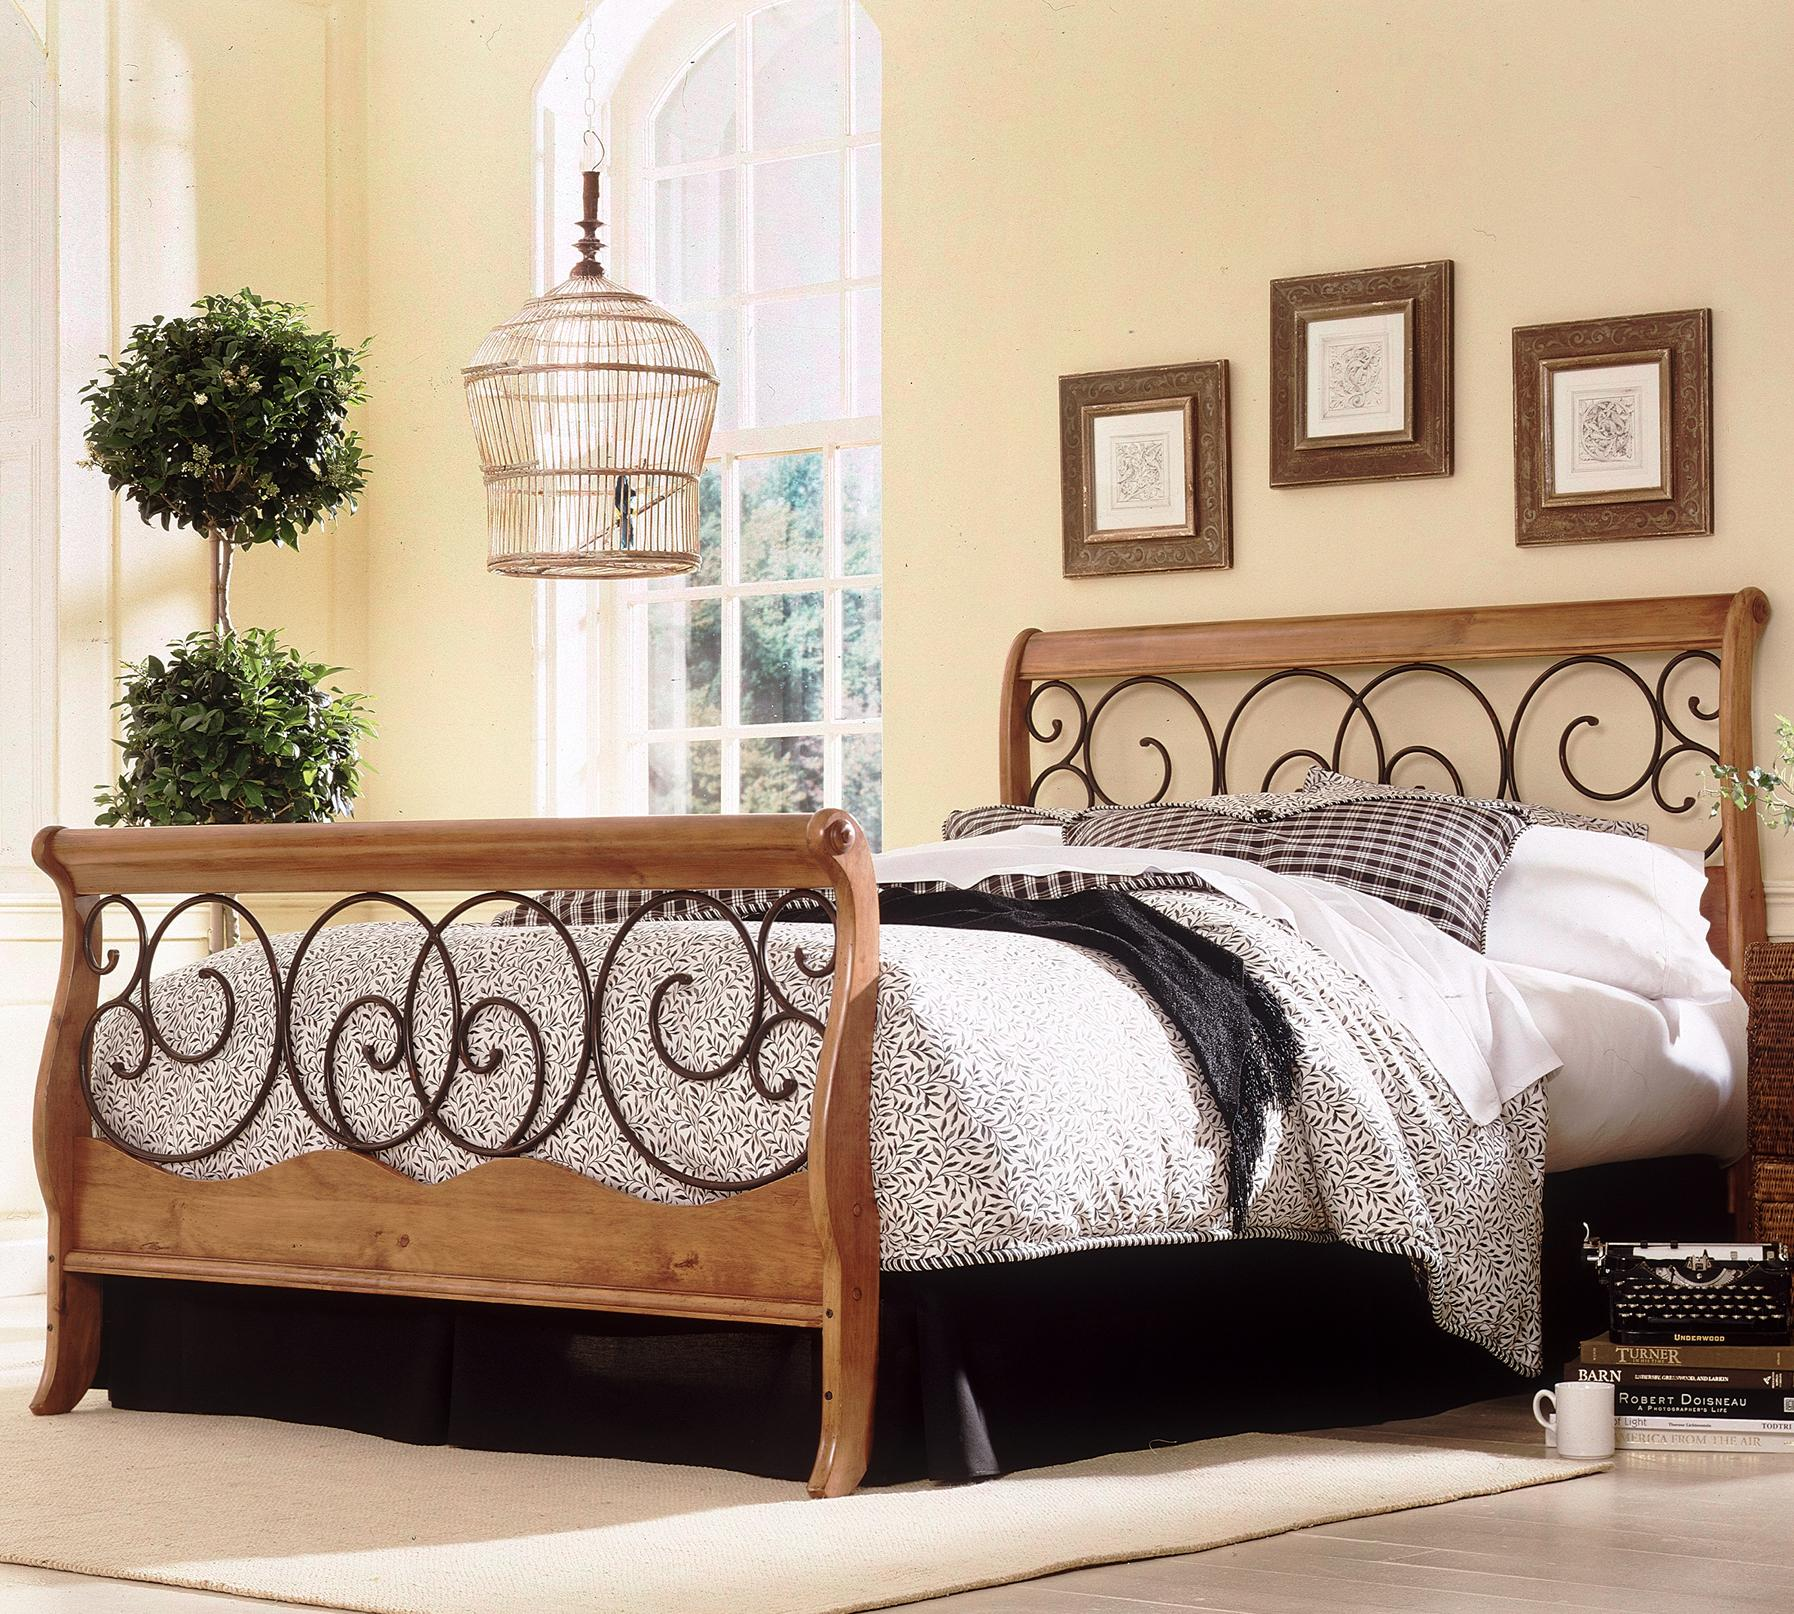 fashion bed group wood and metal beds california king dunhill i bed